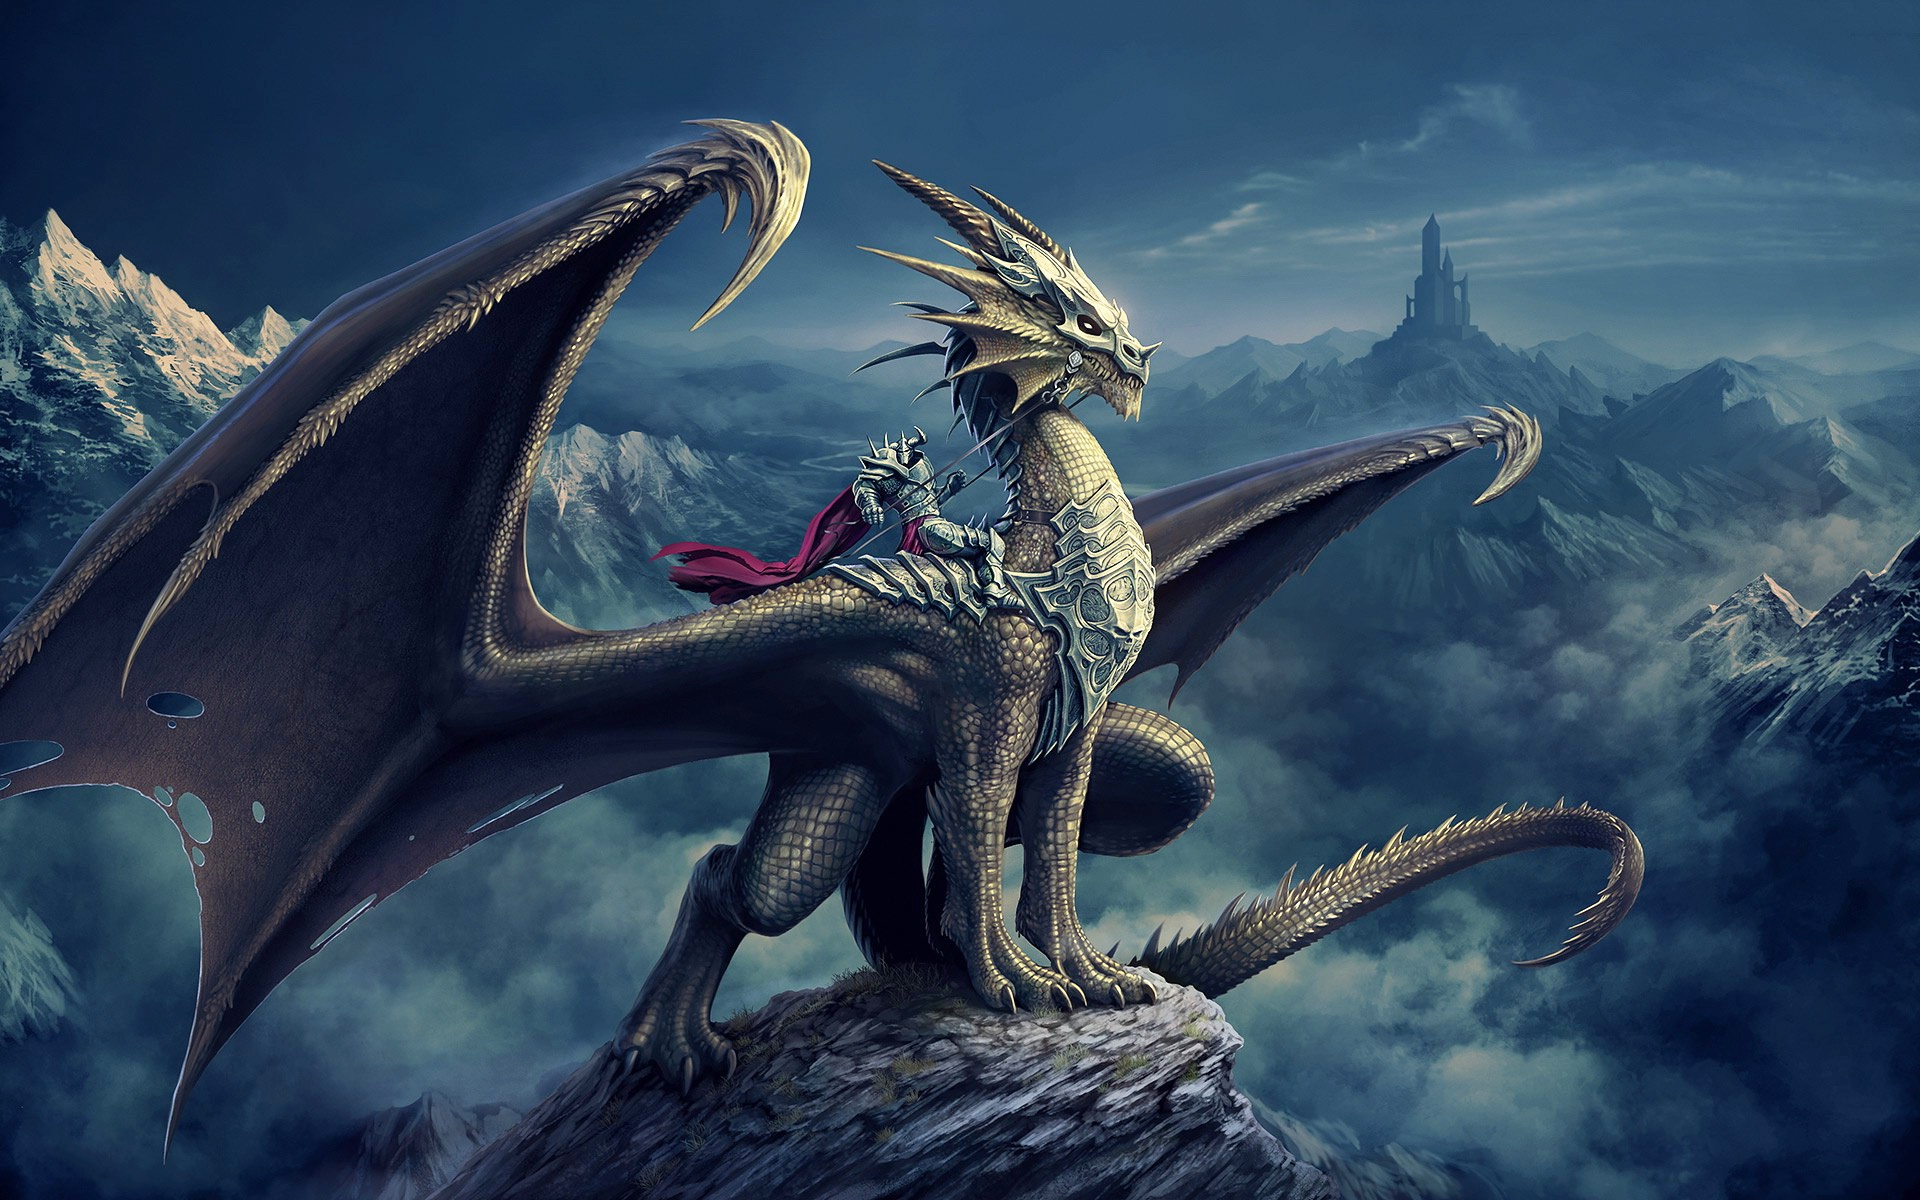 Beautiful Wallpaper High Resolution Fantasy - Fantasy-Dragon-Wallpaper-High-Resolution  Pic_883946.jpg